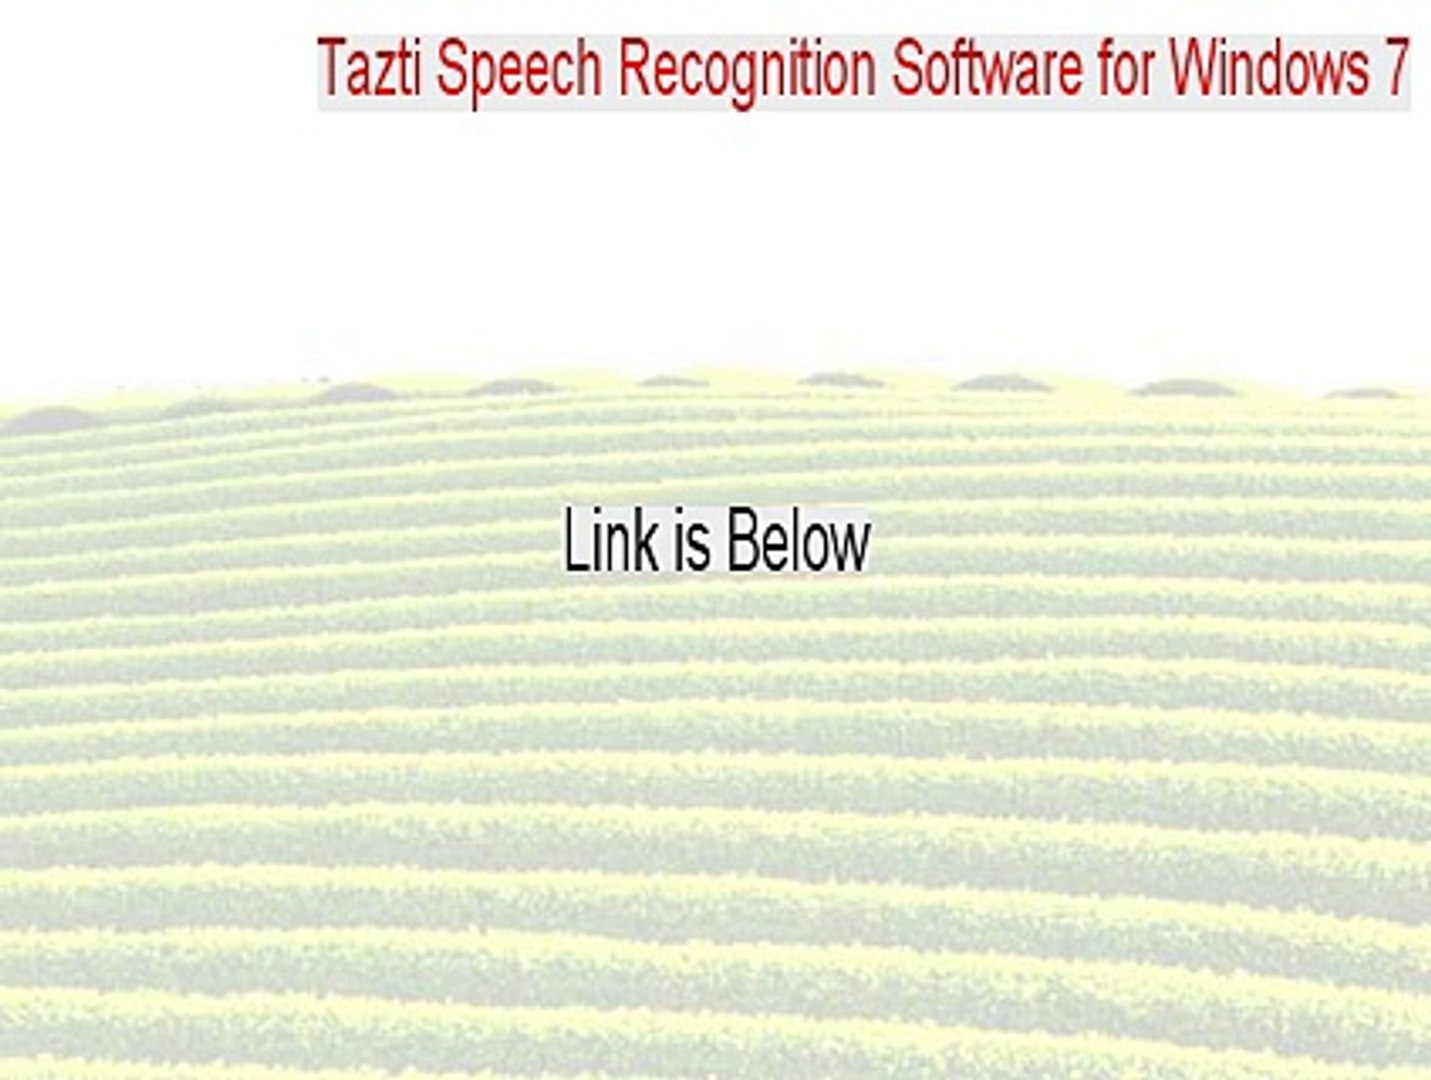 Tazti Speech Recognition Software for Windows 7, 8, 8.1 (64-bit) Cracked - Tazti Speech Recognition